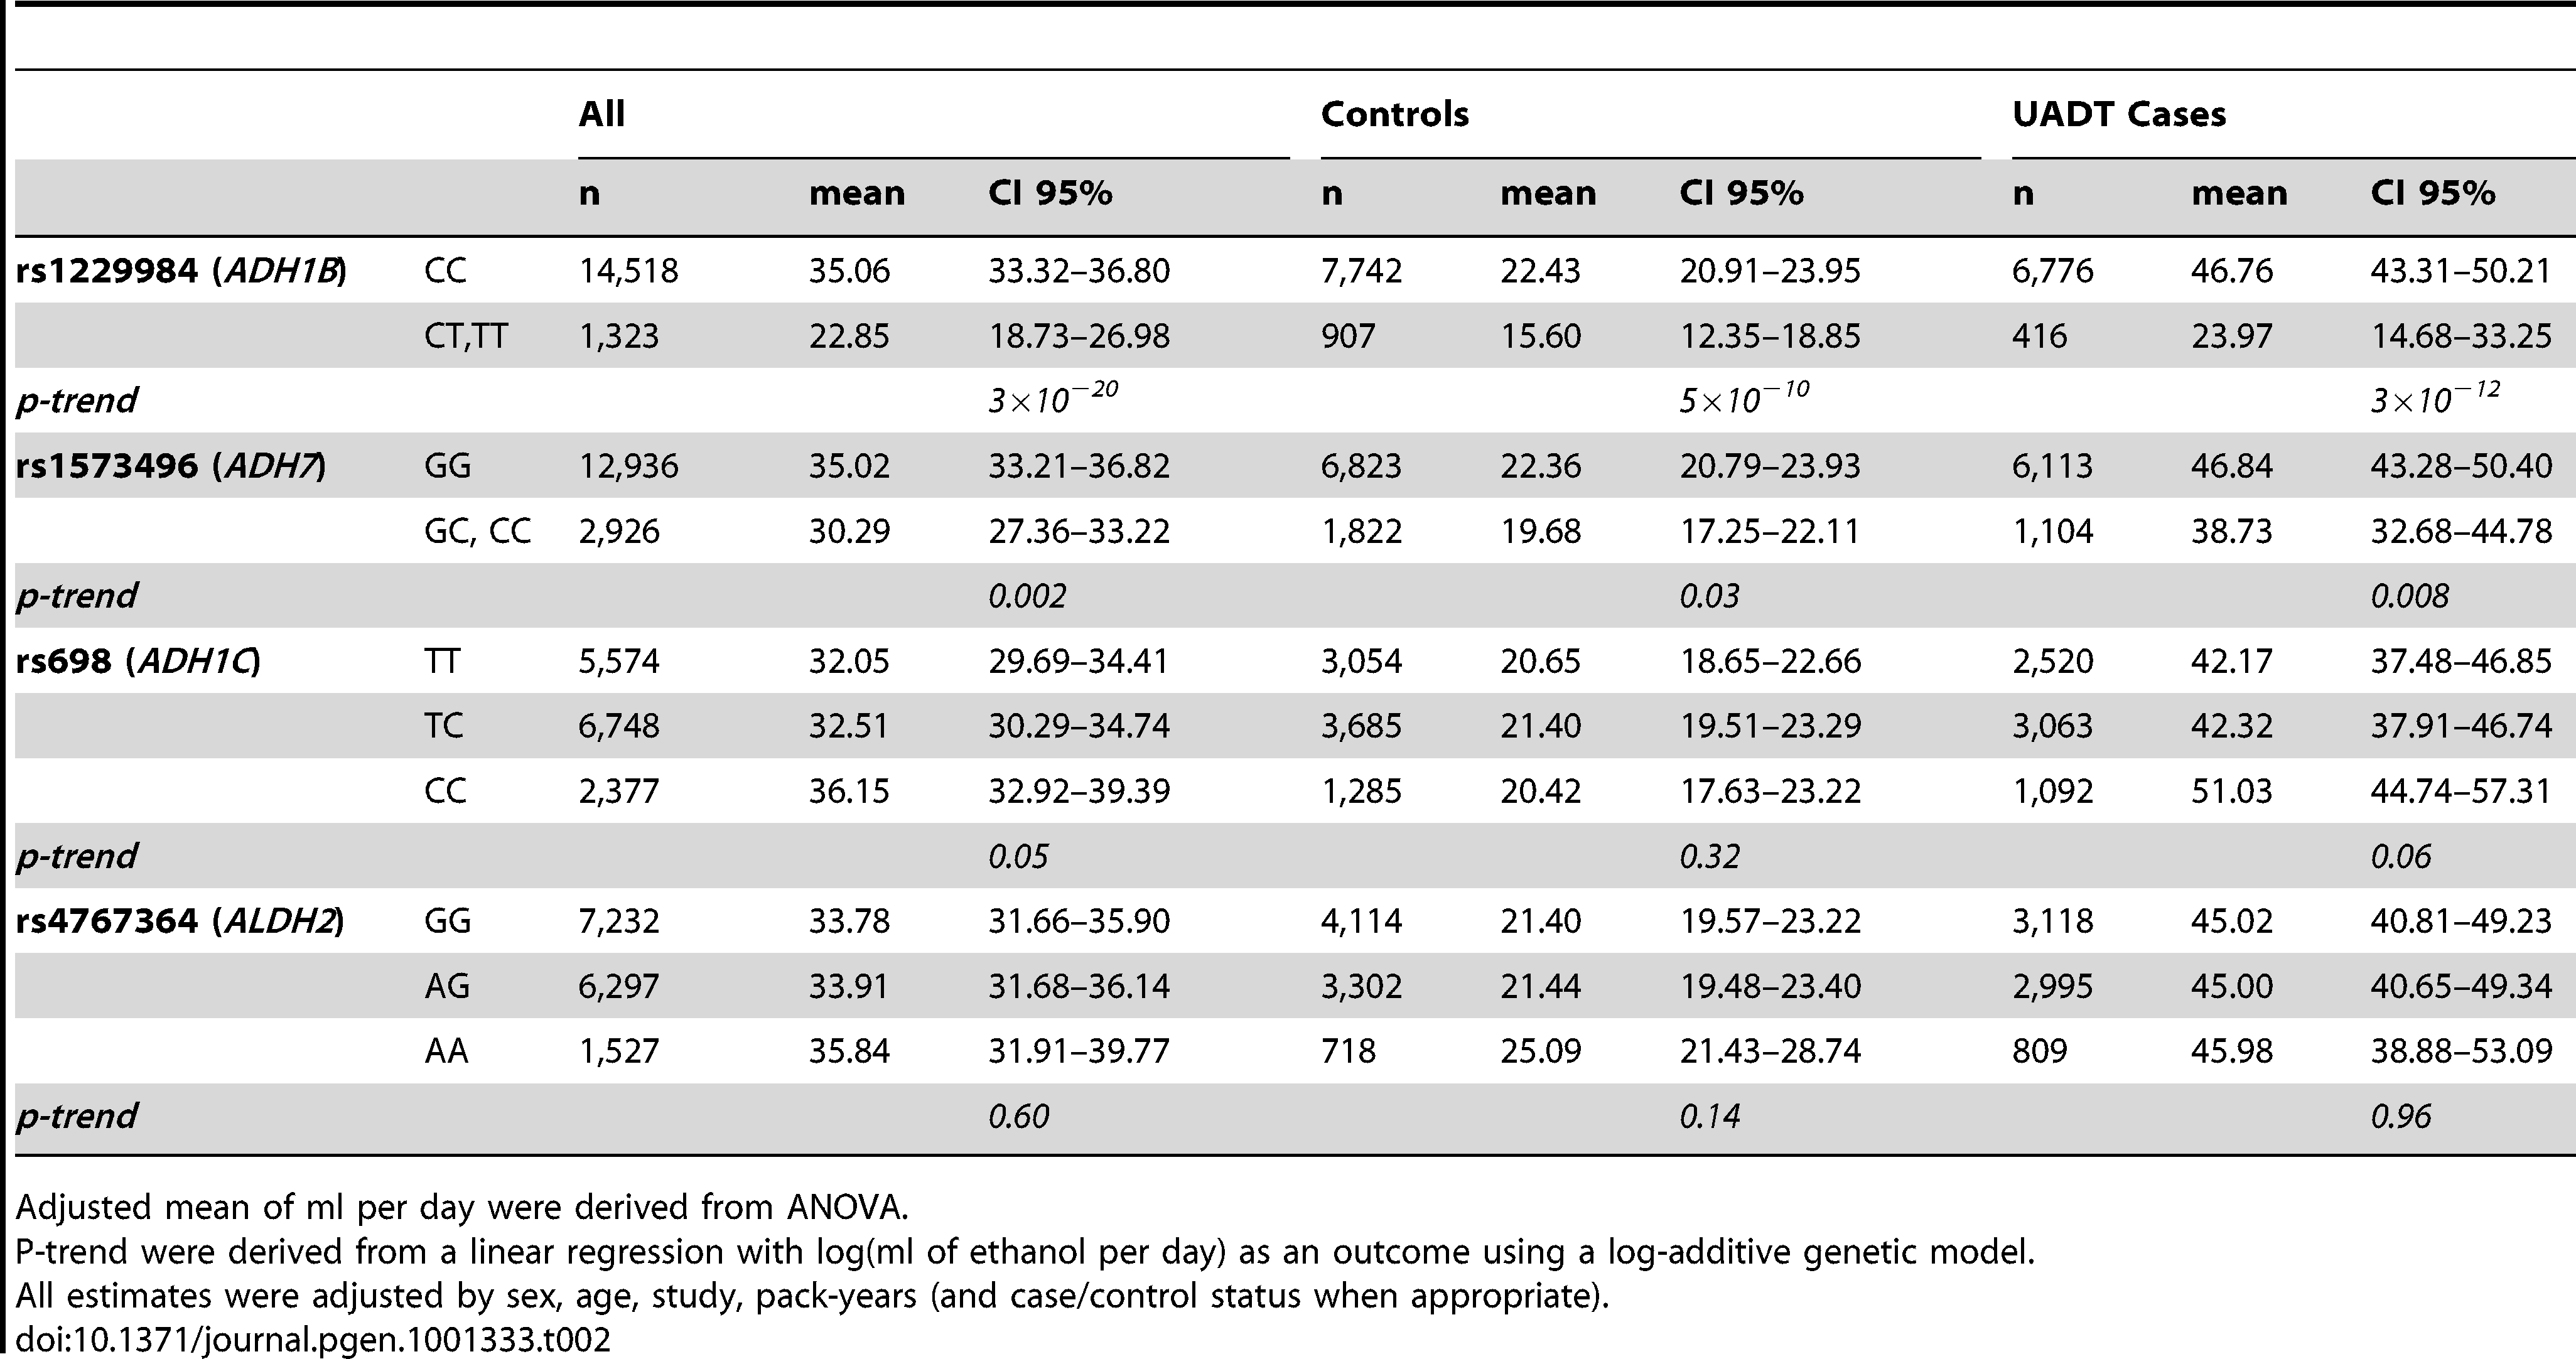 Association between rs1229984, rs1573496, rs698, rs4767364, and drinking intensity in ever drinkers expressed as mean of ml of ethanol consumed per day.